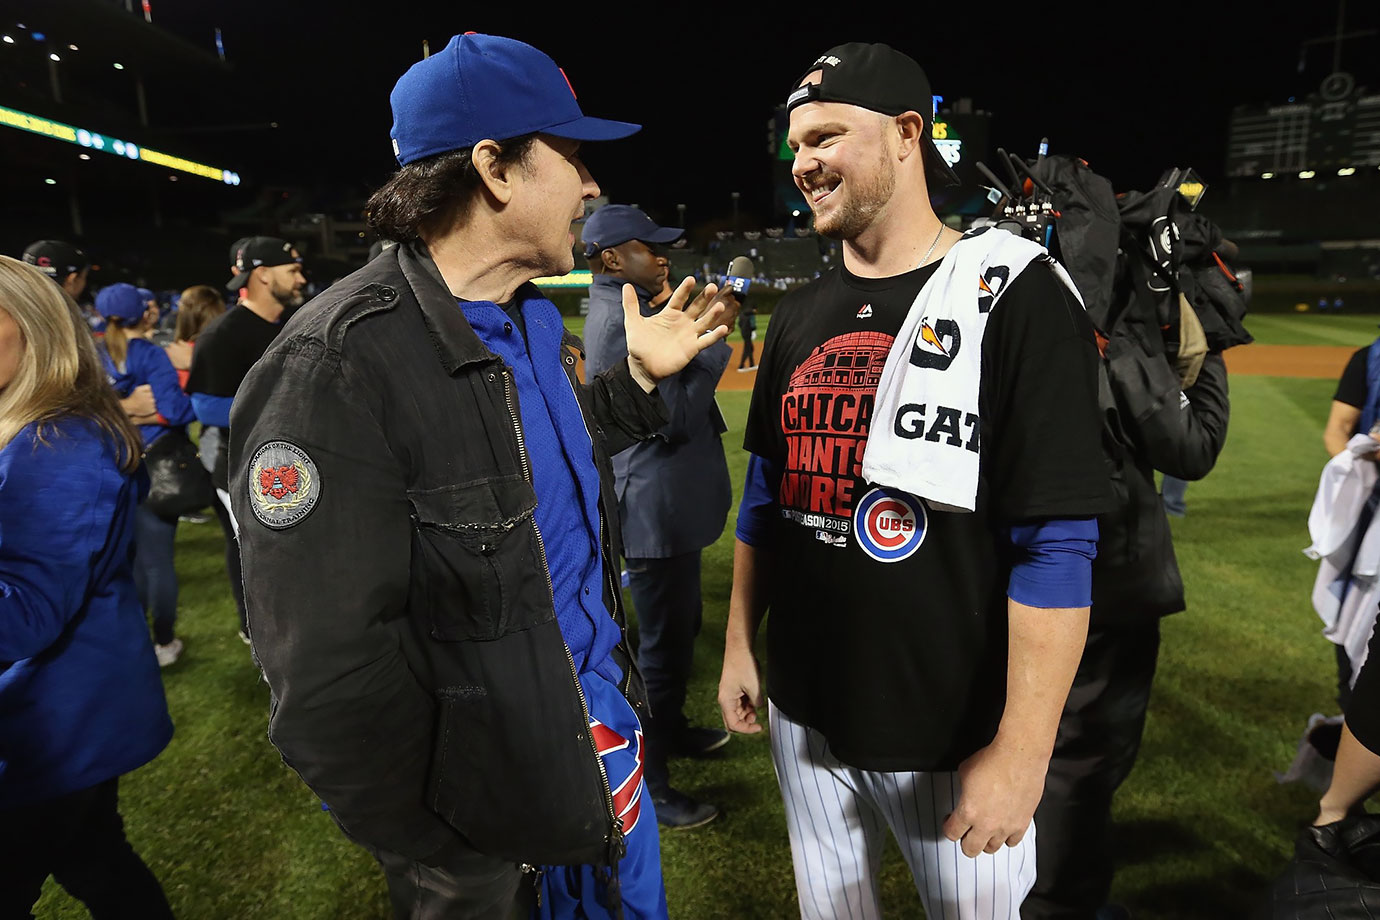 October 13, 2014: Chicago Cubs vs. St. Louis Cardinals at Wrigley Field in Chicago — National League Division Series, Game 4